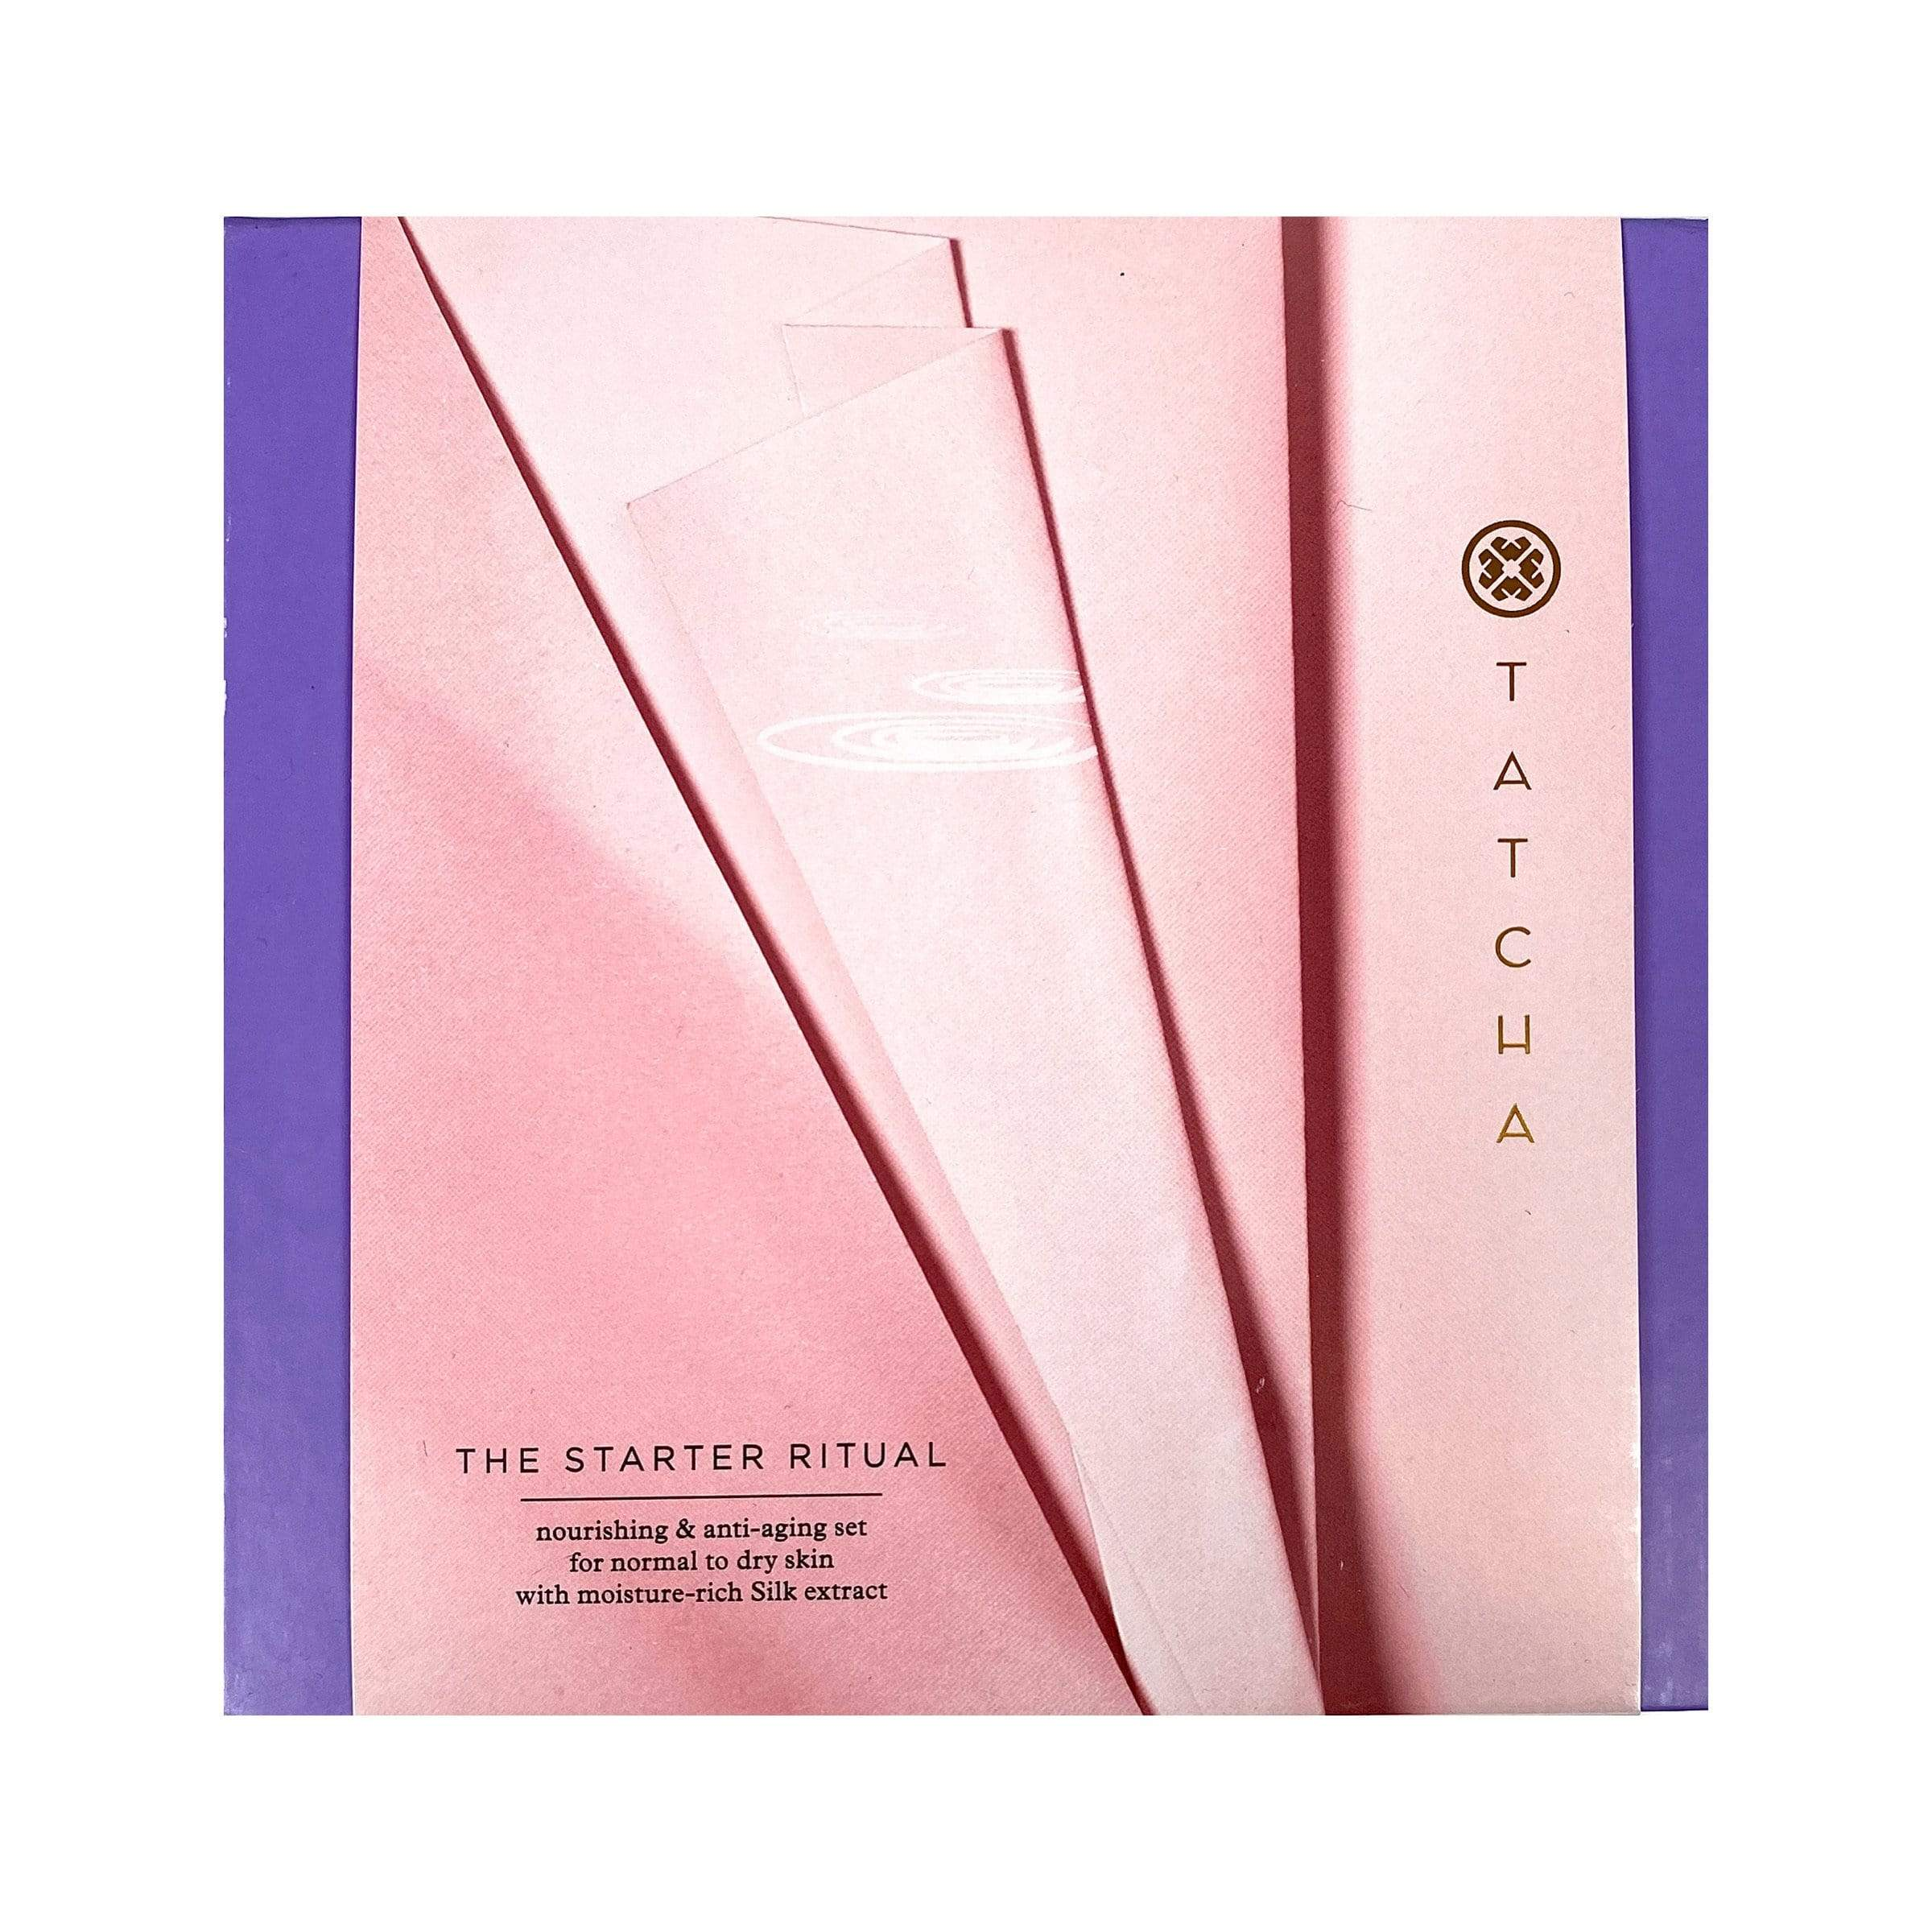 Tatcha Gift Sets TATCHA The Starter Ritual Nourishing & Anti-Aging Set - Normal To Dry Skin